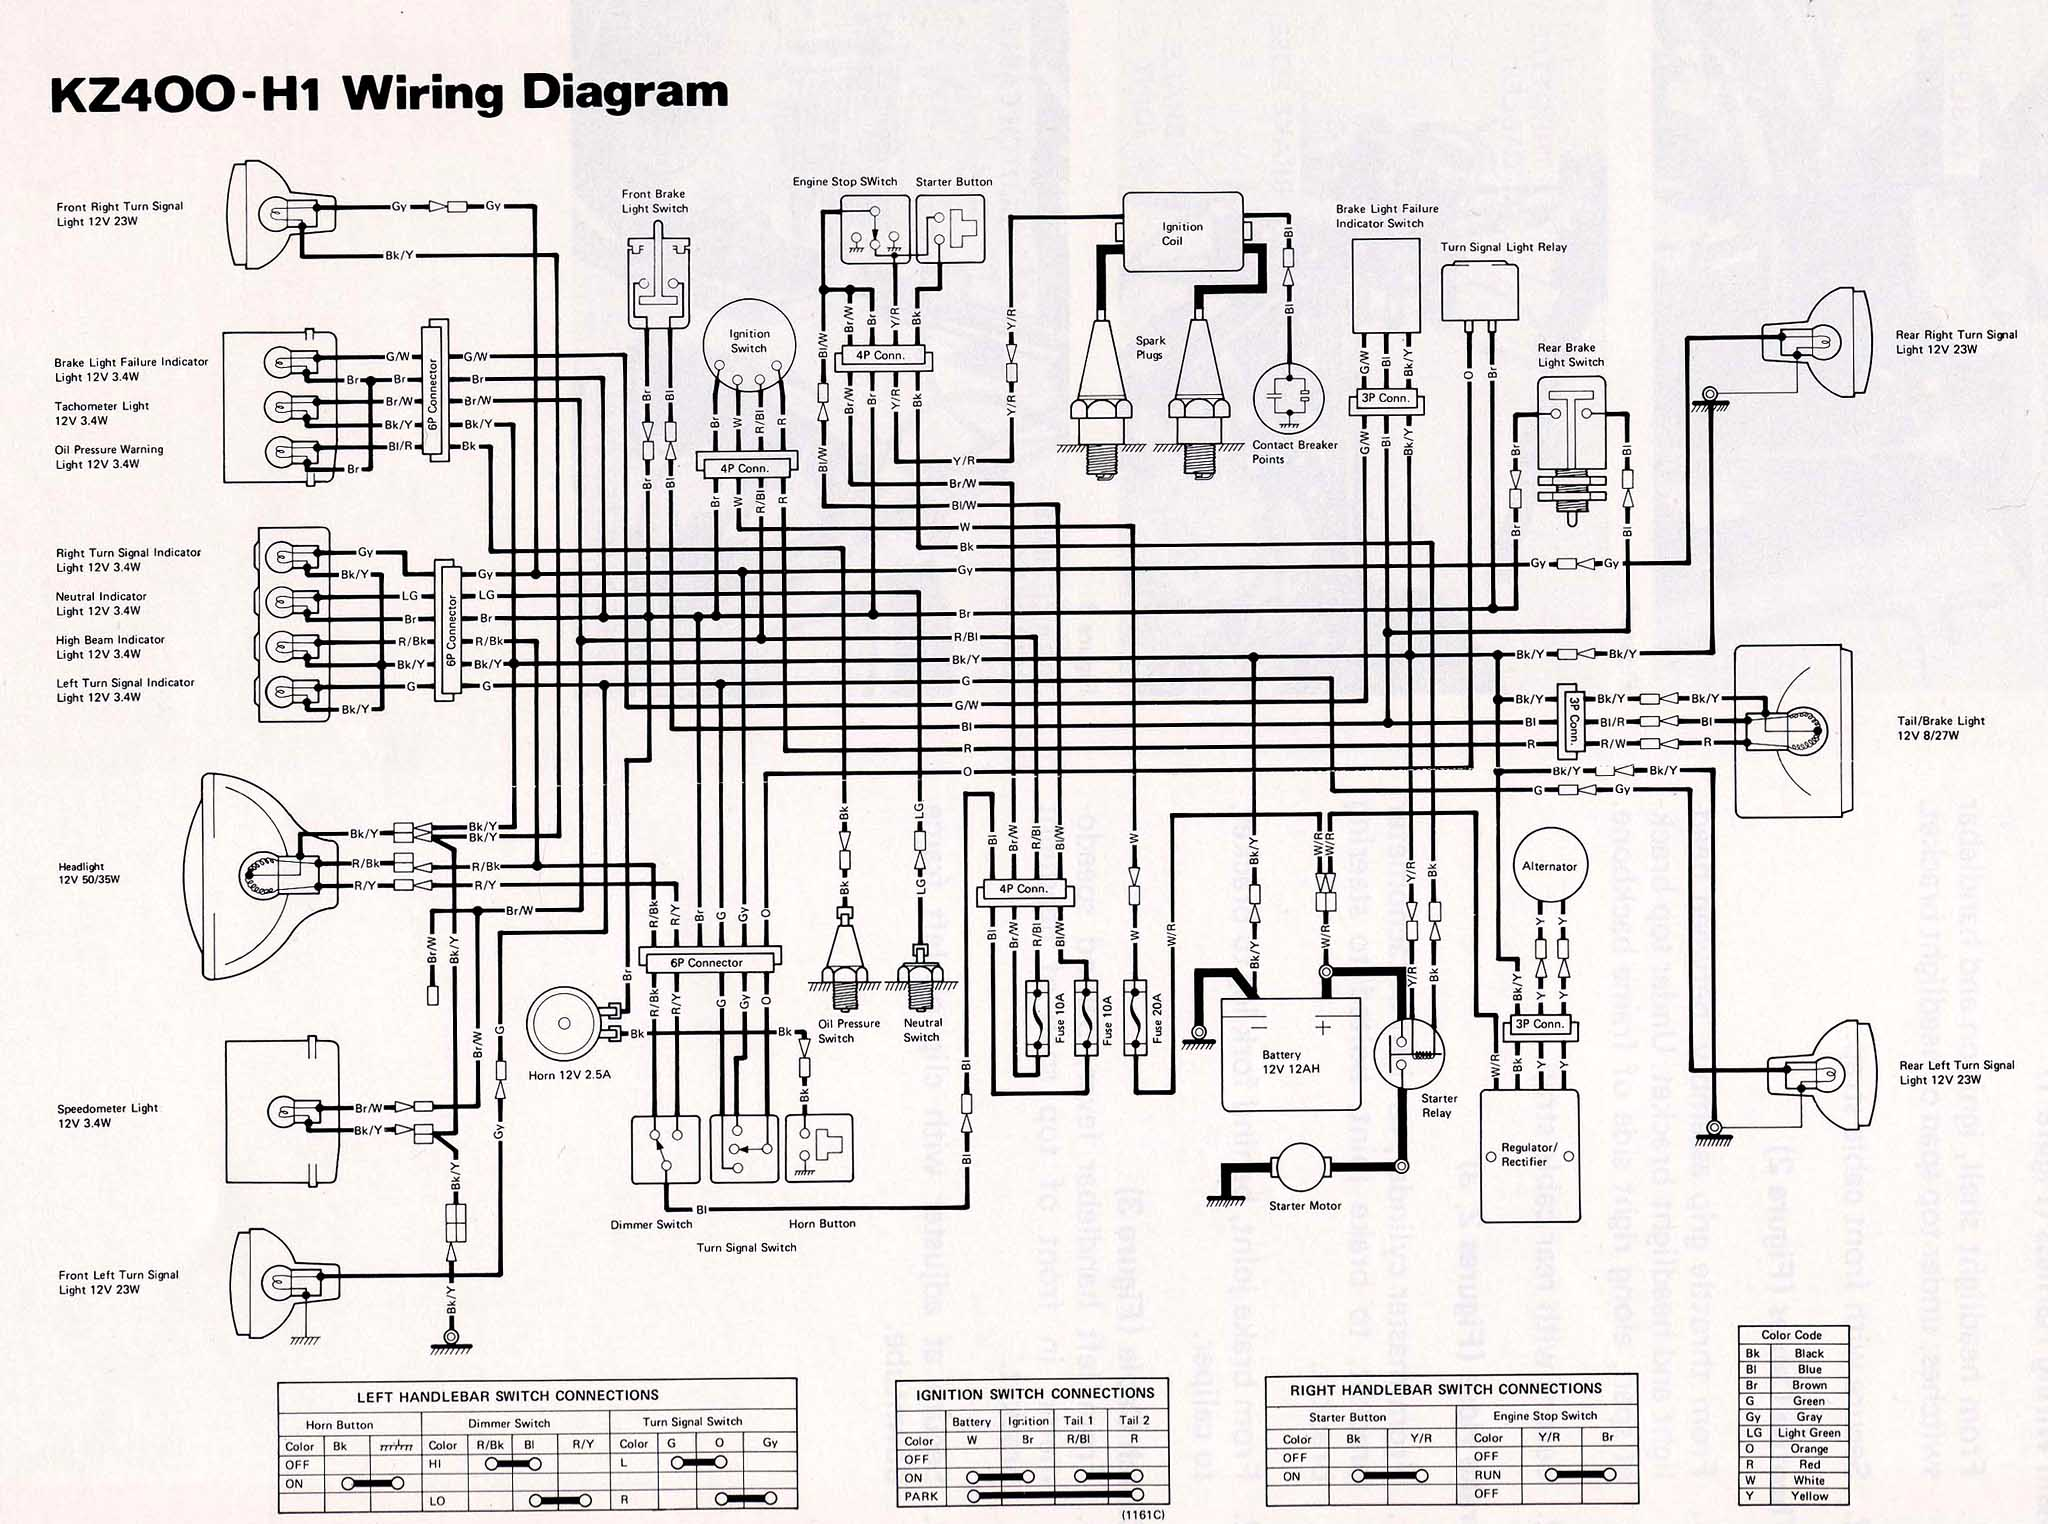 Rotation of KZ400 H1 LTD 22 index of techh tips bilder wiring diagrams 1980 kawasaki 440 ltd wiring diagram at bayanpartner.co